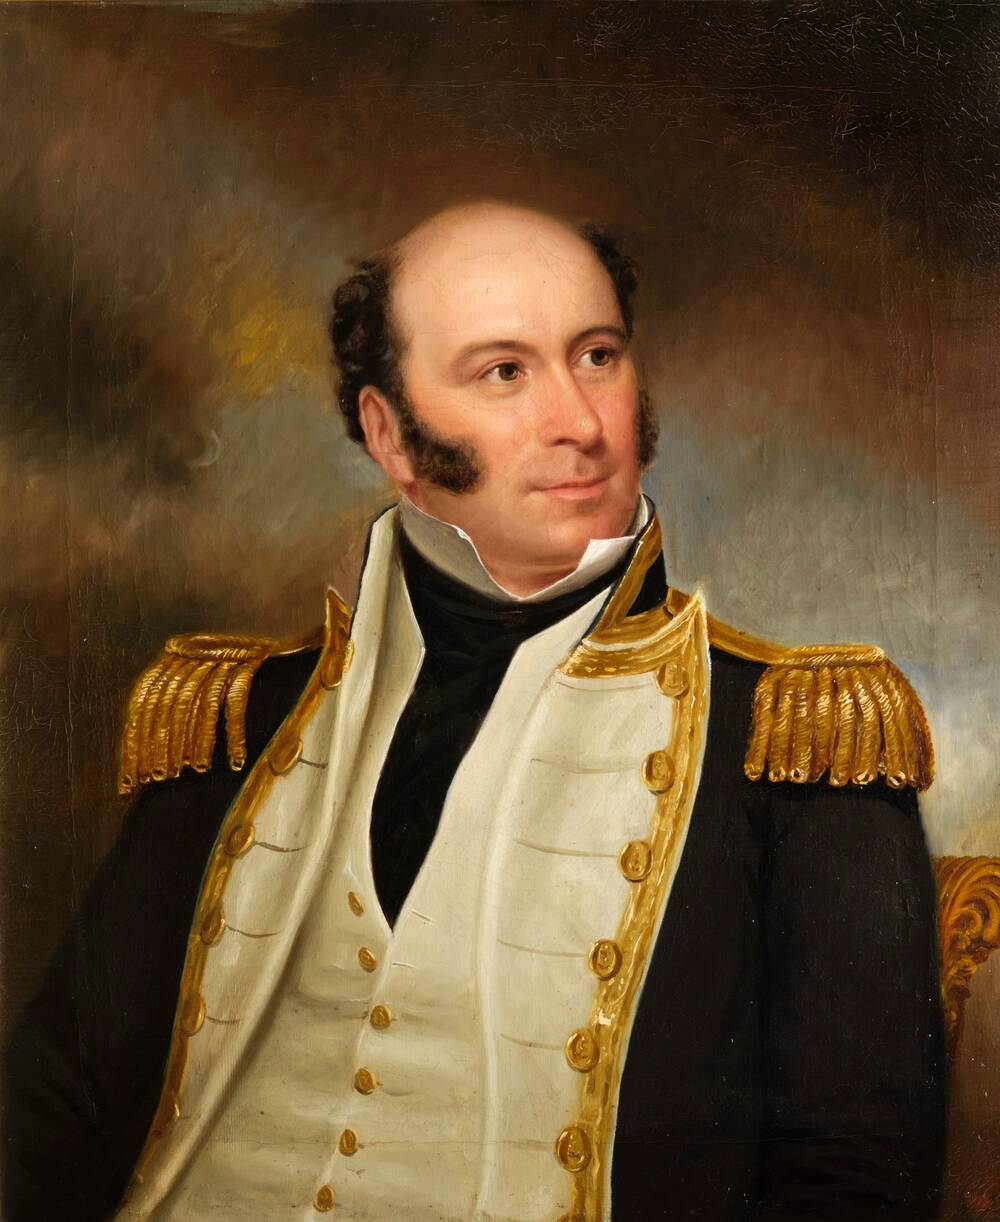 A half portrait of a middle-aged man in naval uniform. He has dark sideburns although is bald on top. He wears a navy jacket with gold trimmings, and a white waistcoat underneath.